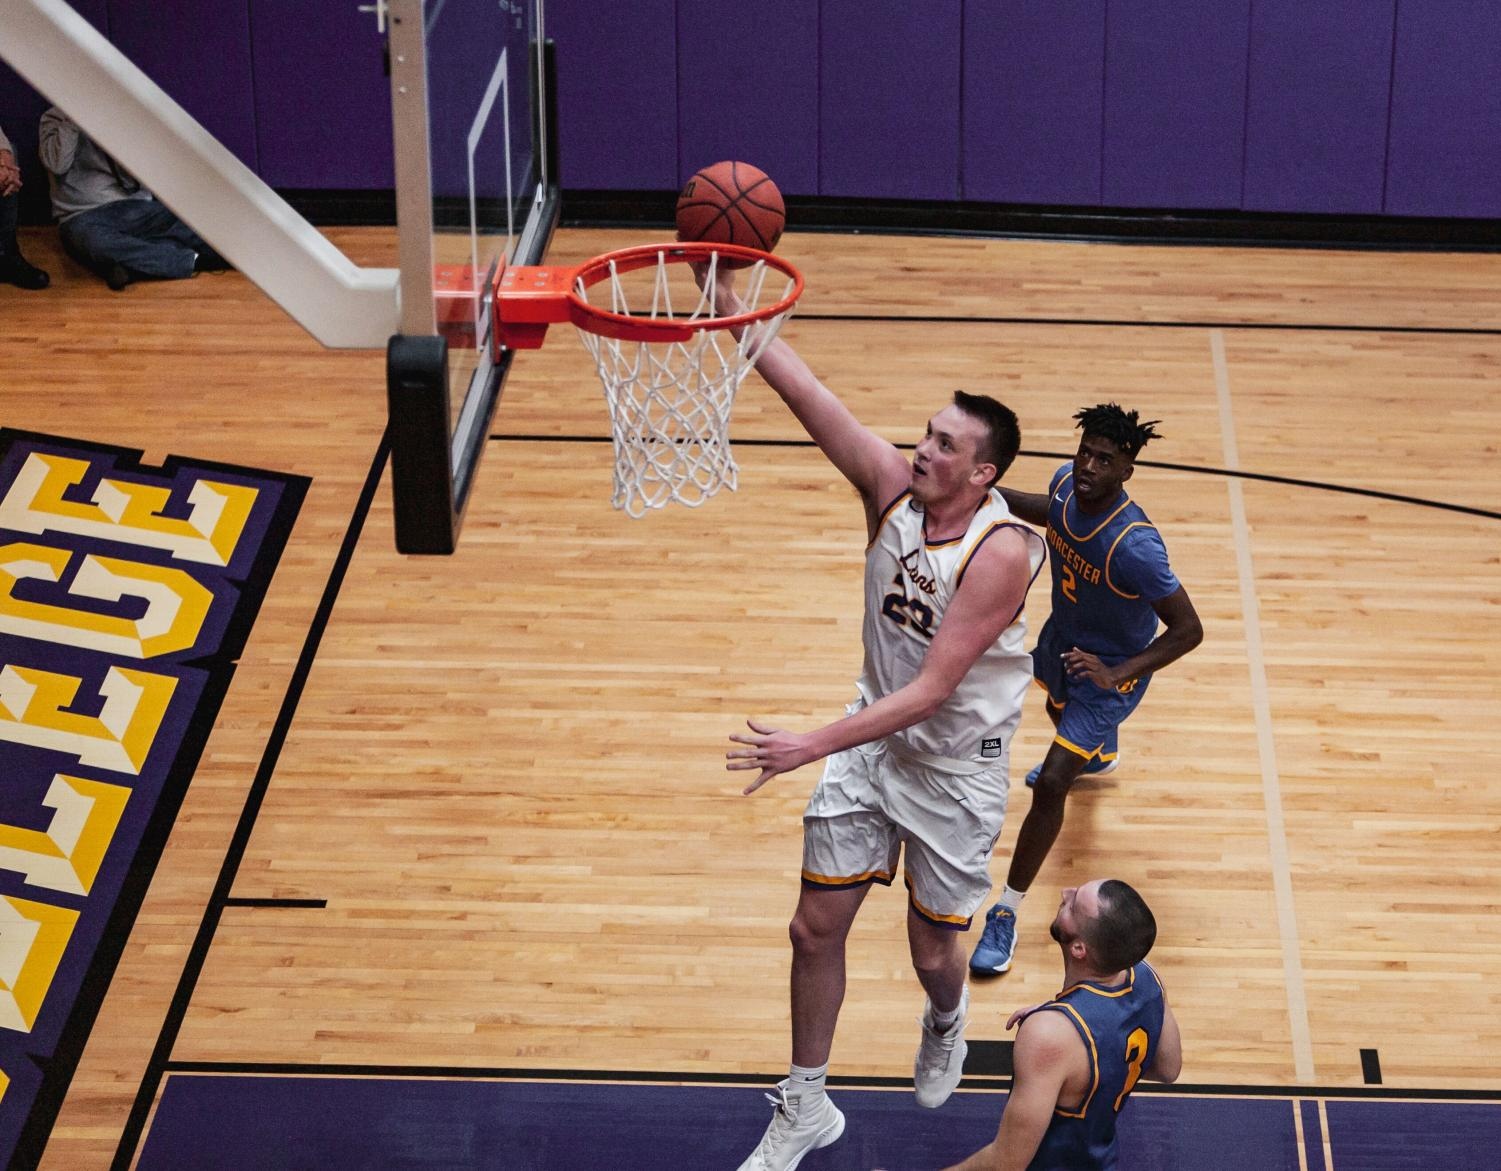 Jarred Houston is averaging 14 points to go along with 8.5 rebounds per game this season Photo credit: Kate Foultz